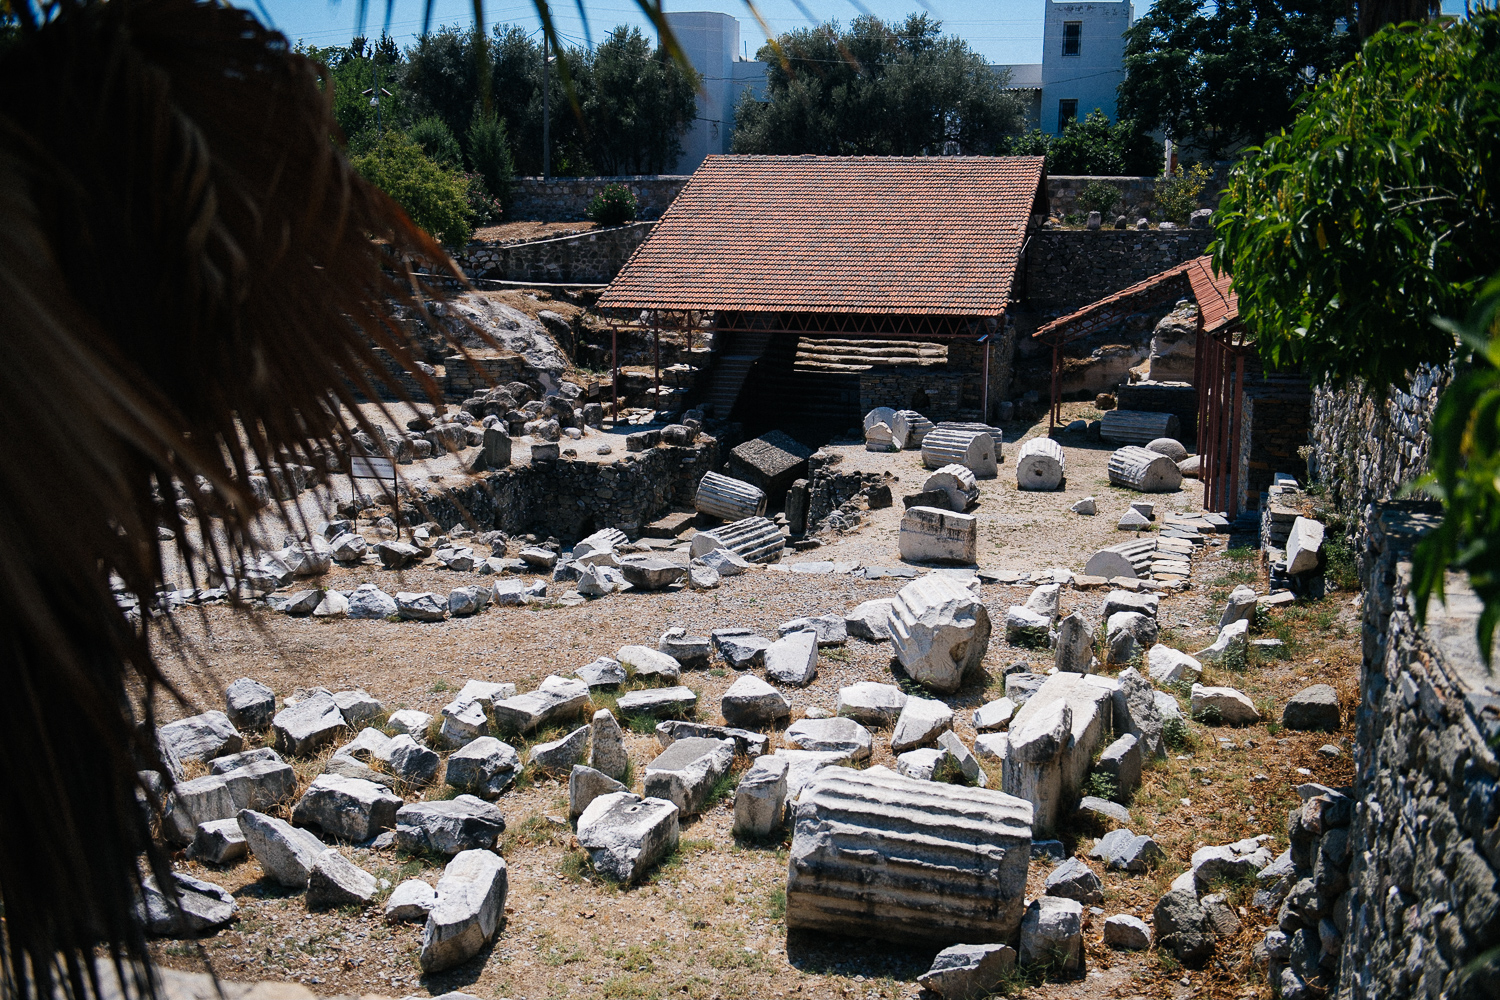 The great Mausoleum, that once stood 40 meters tall and 125 wide is now a pile of rocks.